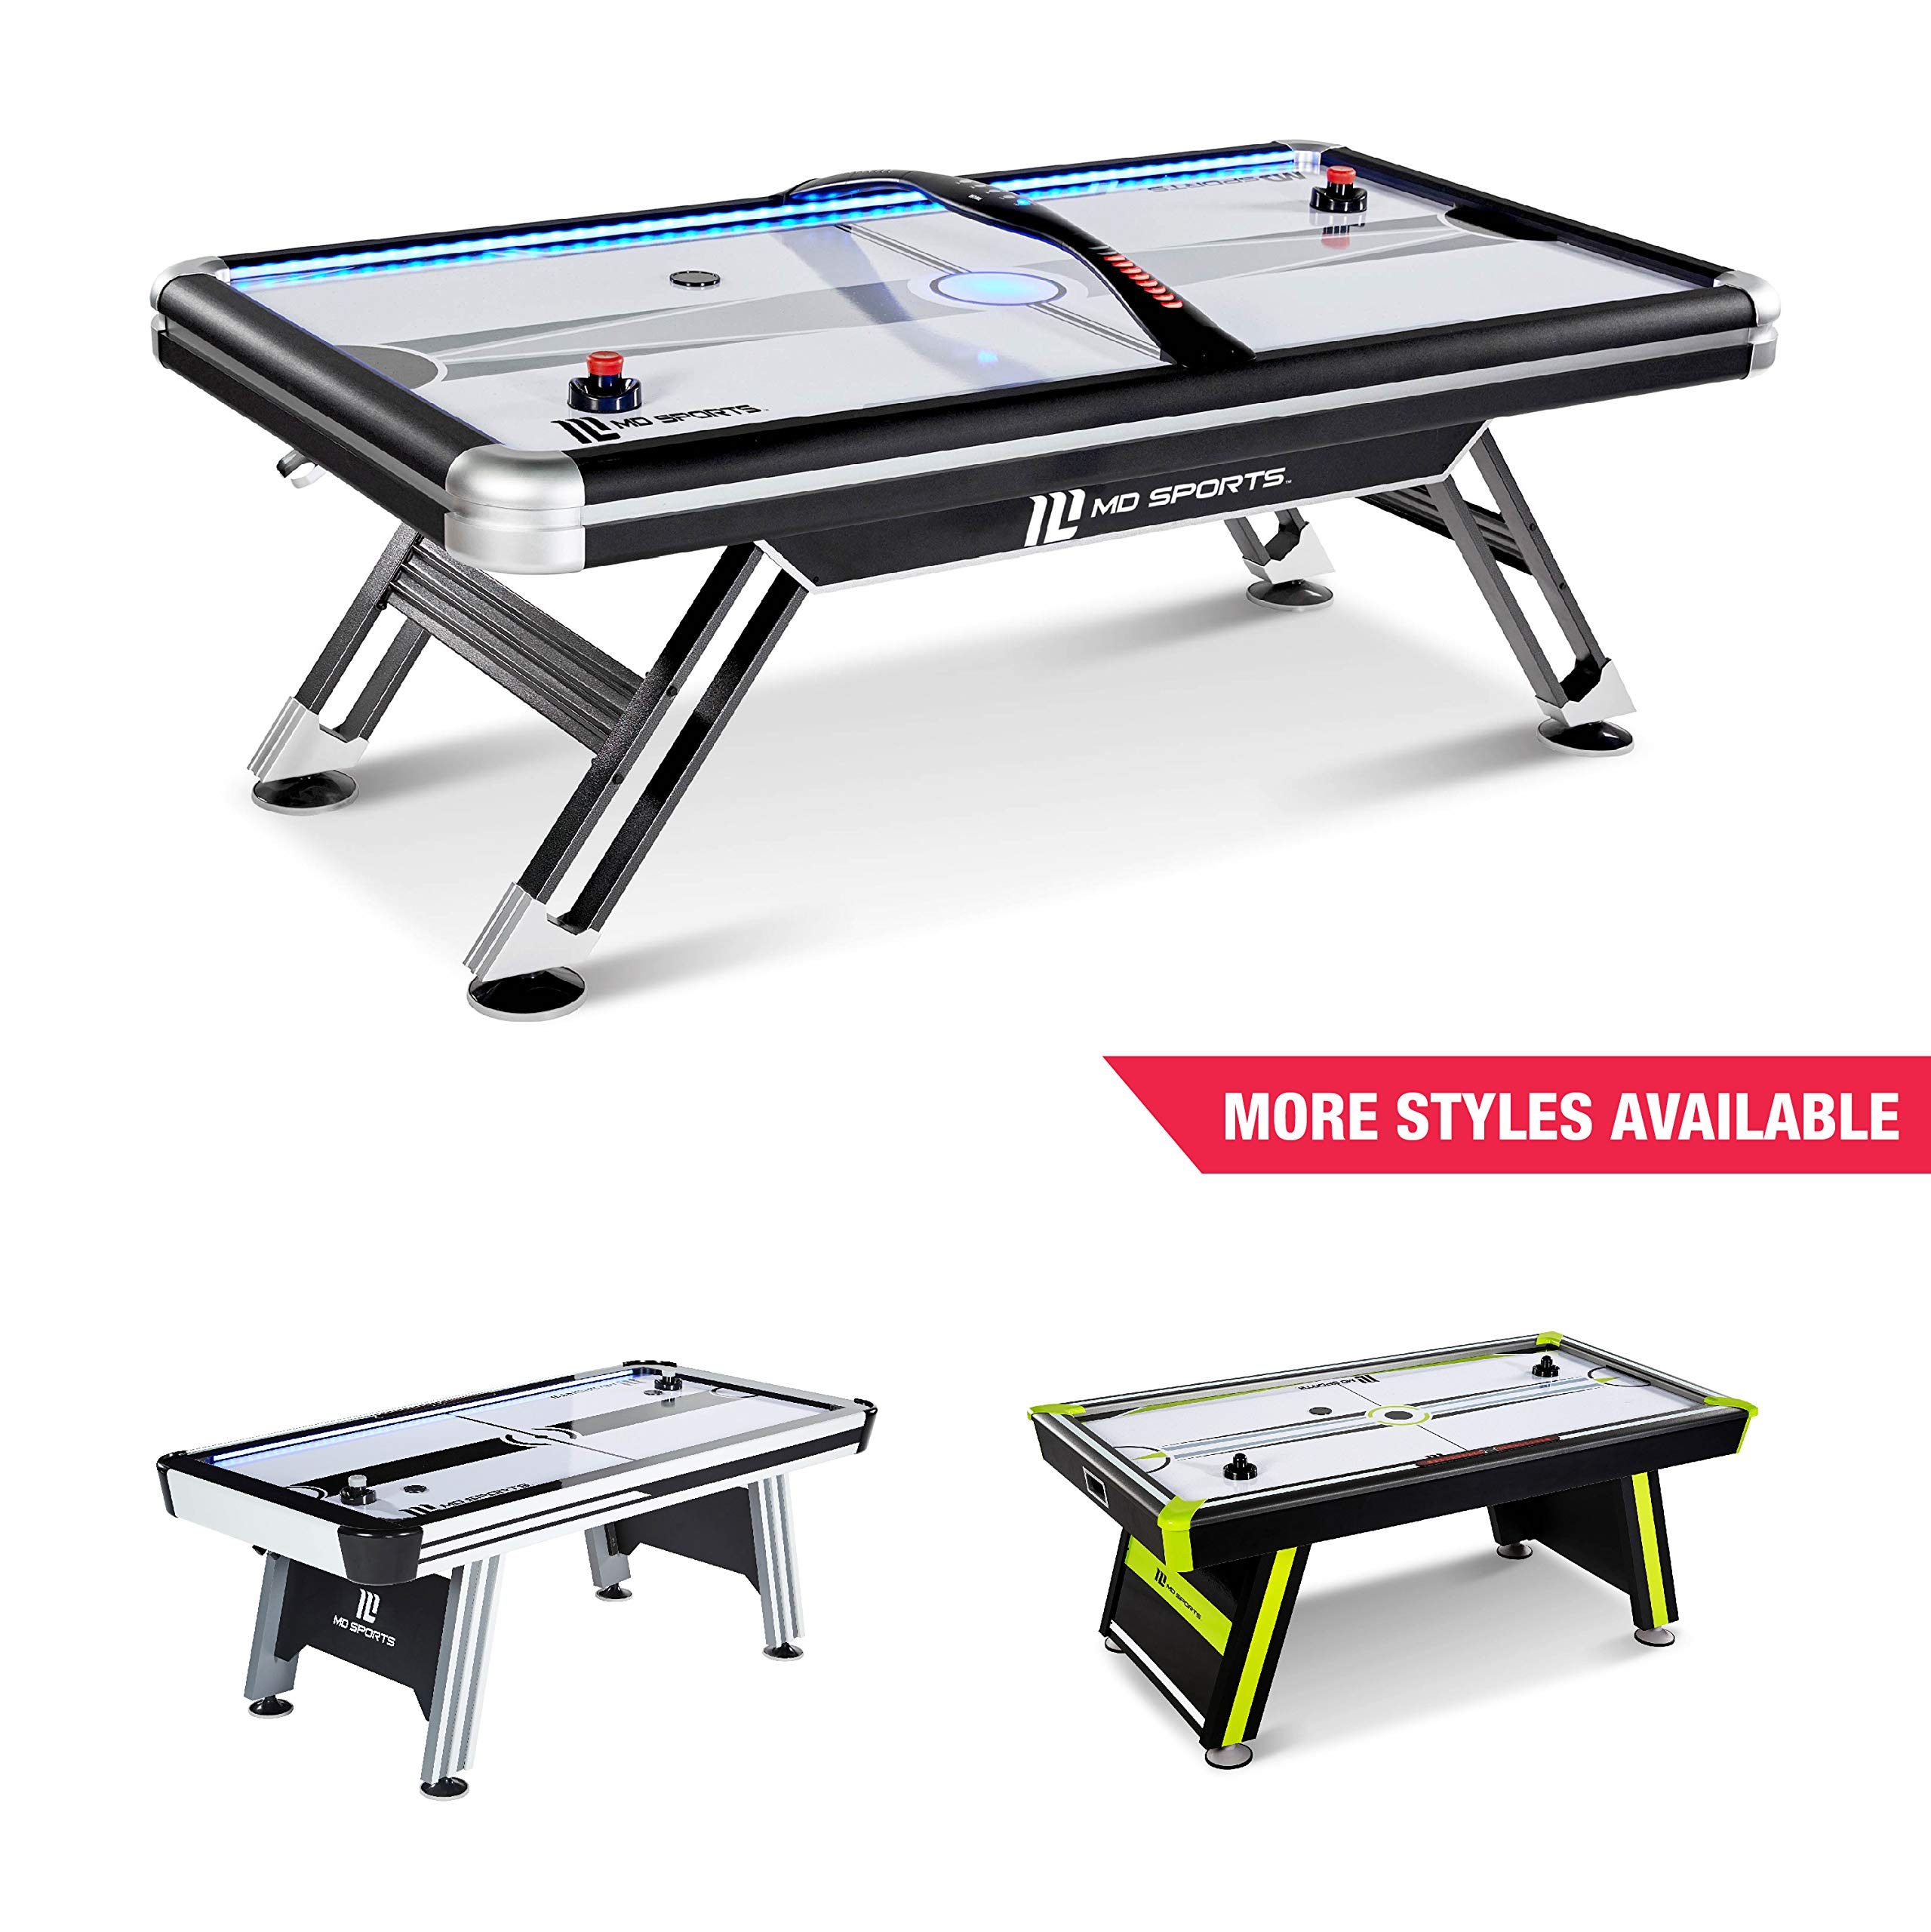 MD SPORTS Titan 7.5 ft. Air Powered Hockey Table with Overhead Scorer by MD Sports